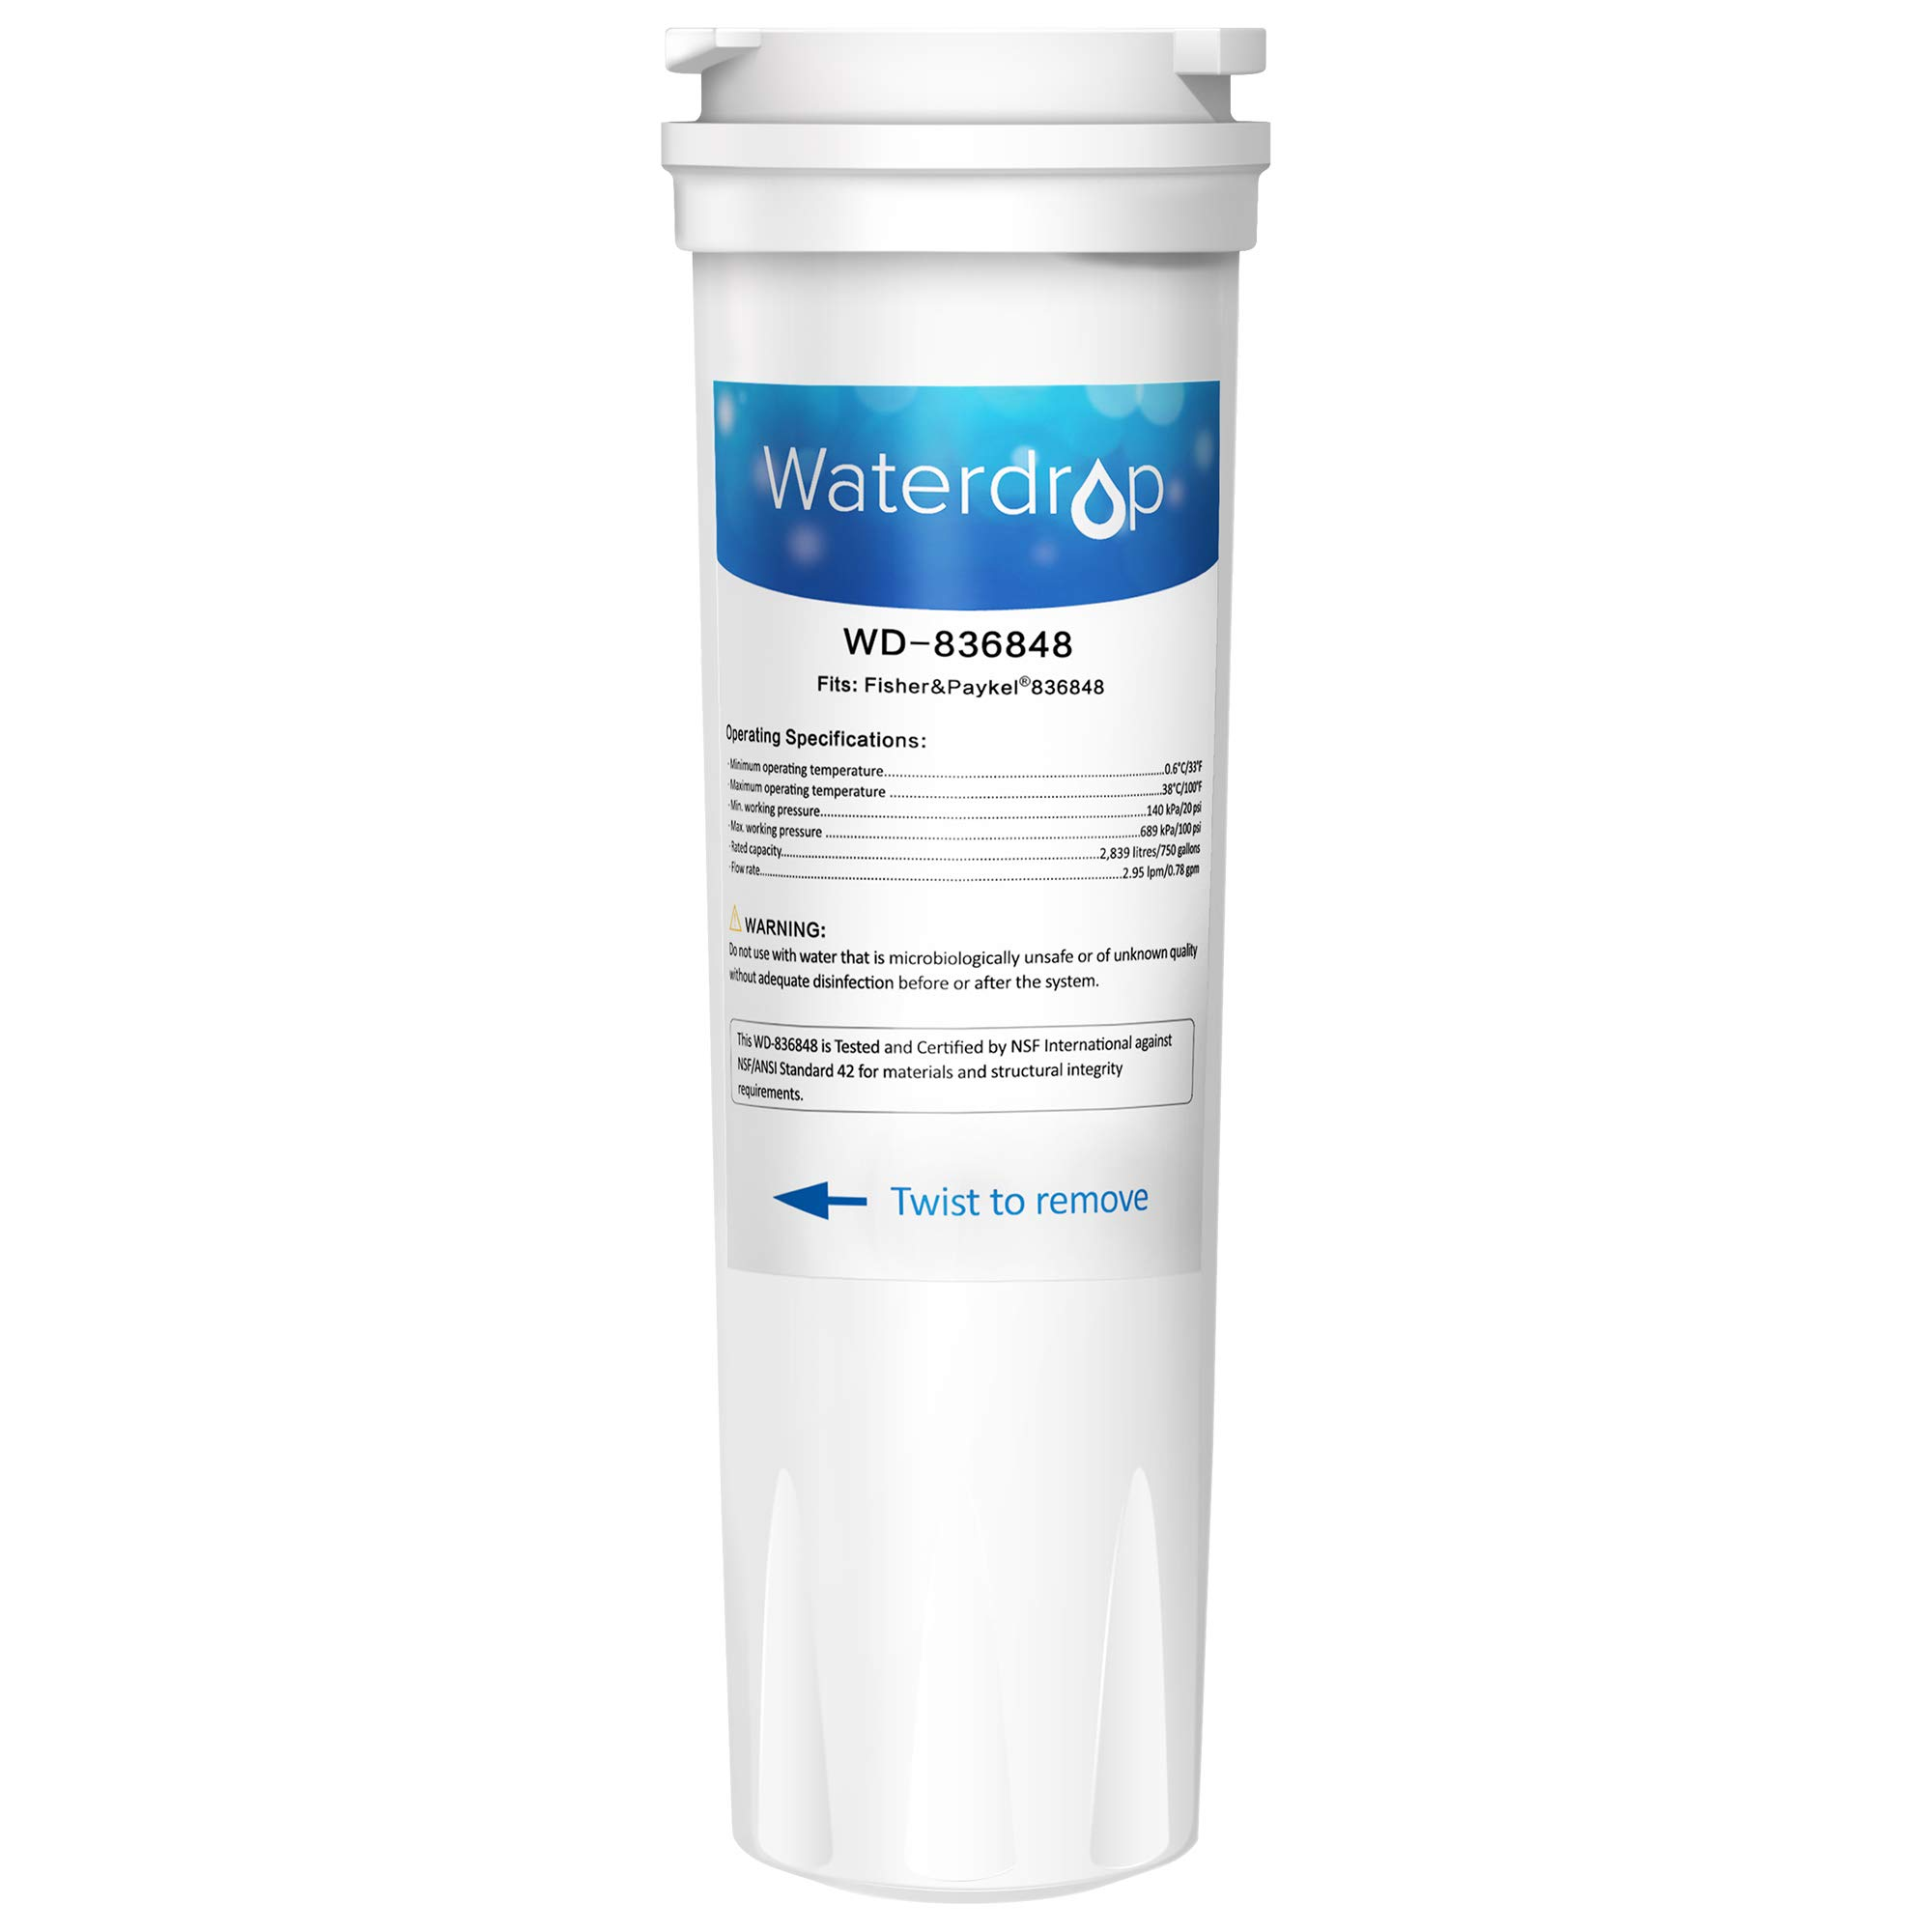 Waterdrop 836848 Replacement Refrigerator Water Filter, Compatible with Fisher & Paykel 836848, 836860, WF296, E522B, PS2067635